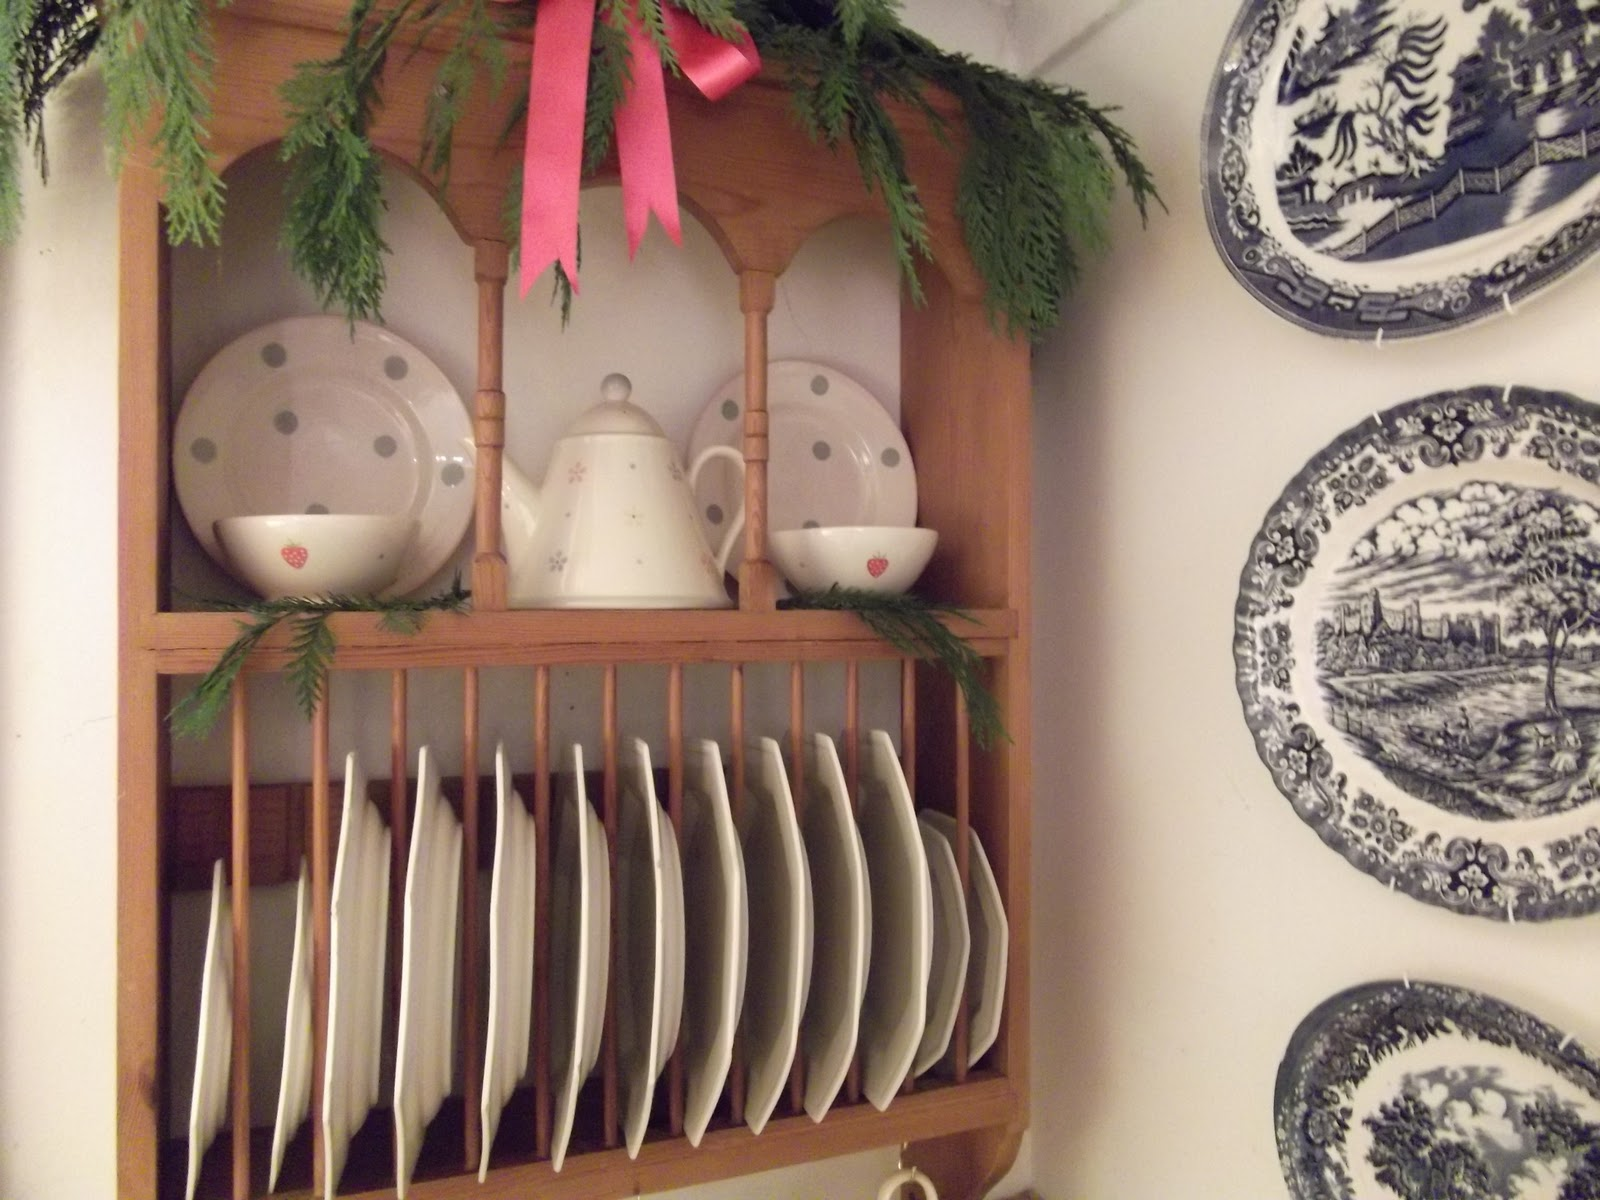 Plate rack make-over